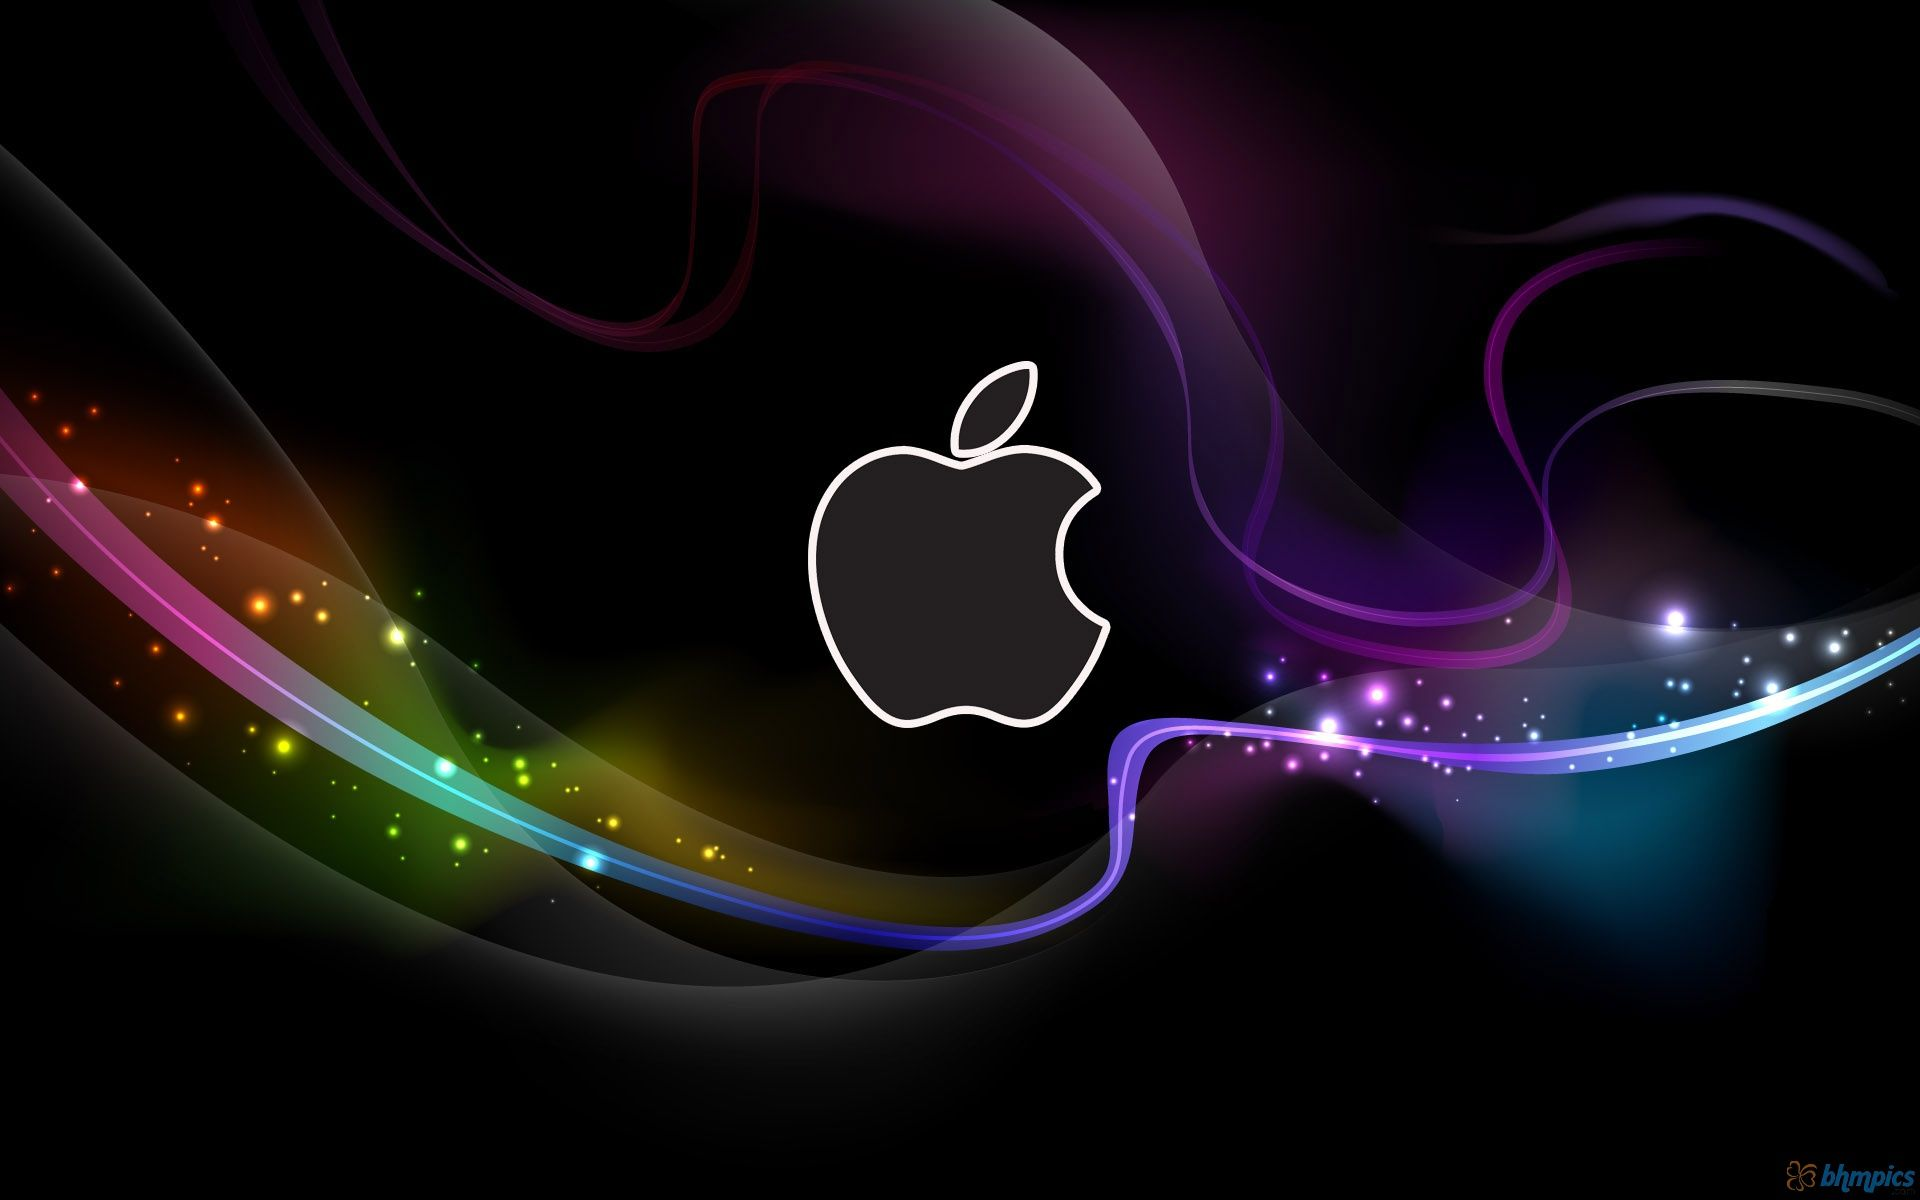 Apple Wallpaper High Resolution Mac Wallpaper HD